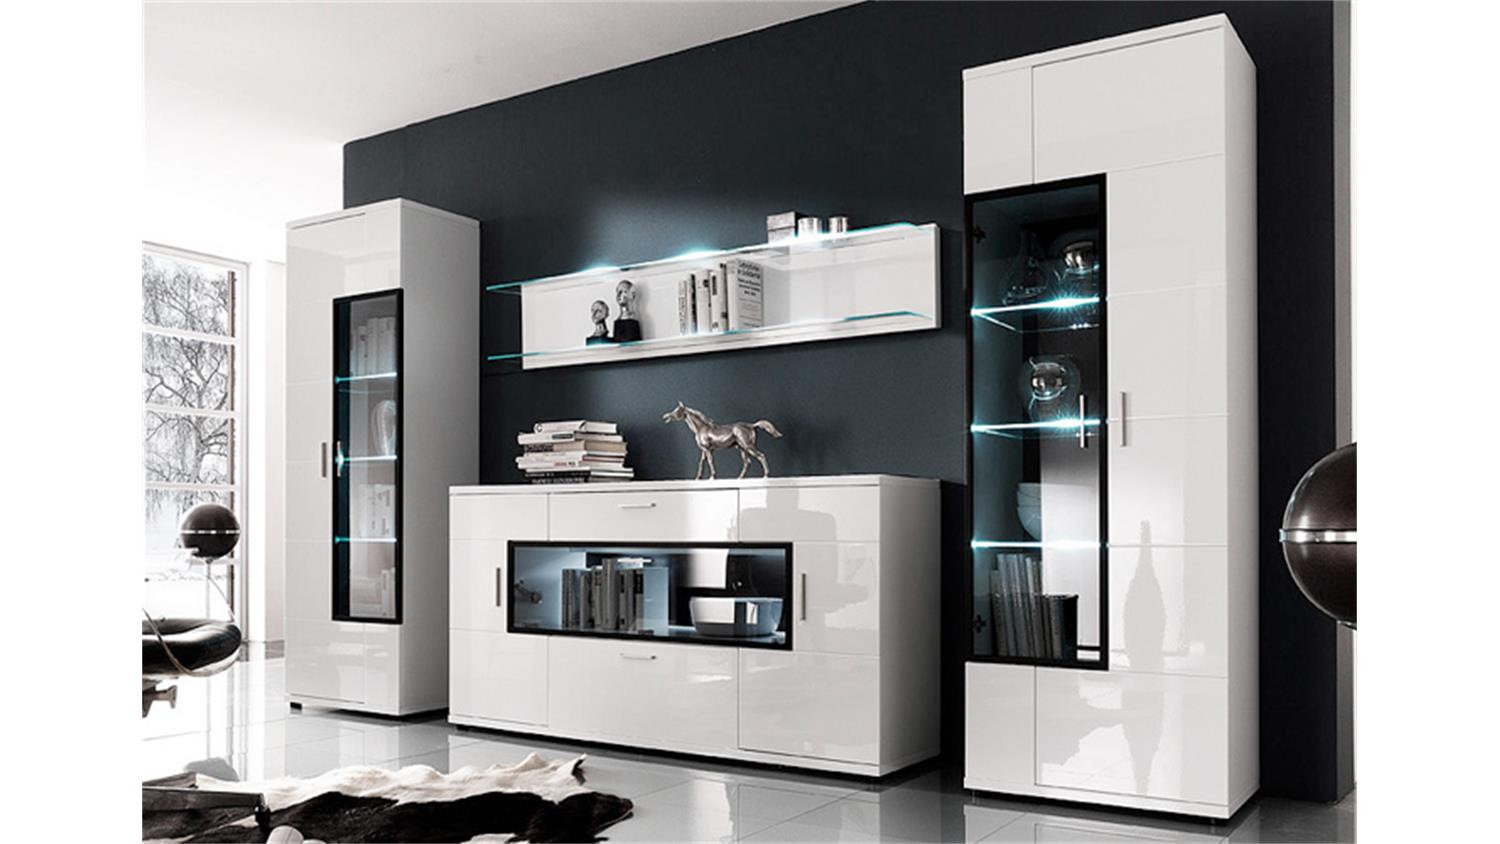 wohnwand corano w04 wei hochglanz alurahmen schwarz. Black Bedroom Furniture Sets. Home Design Ideas